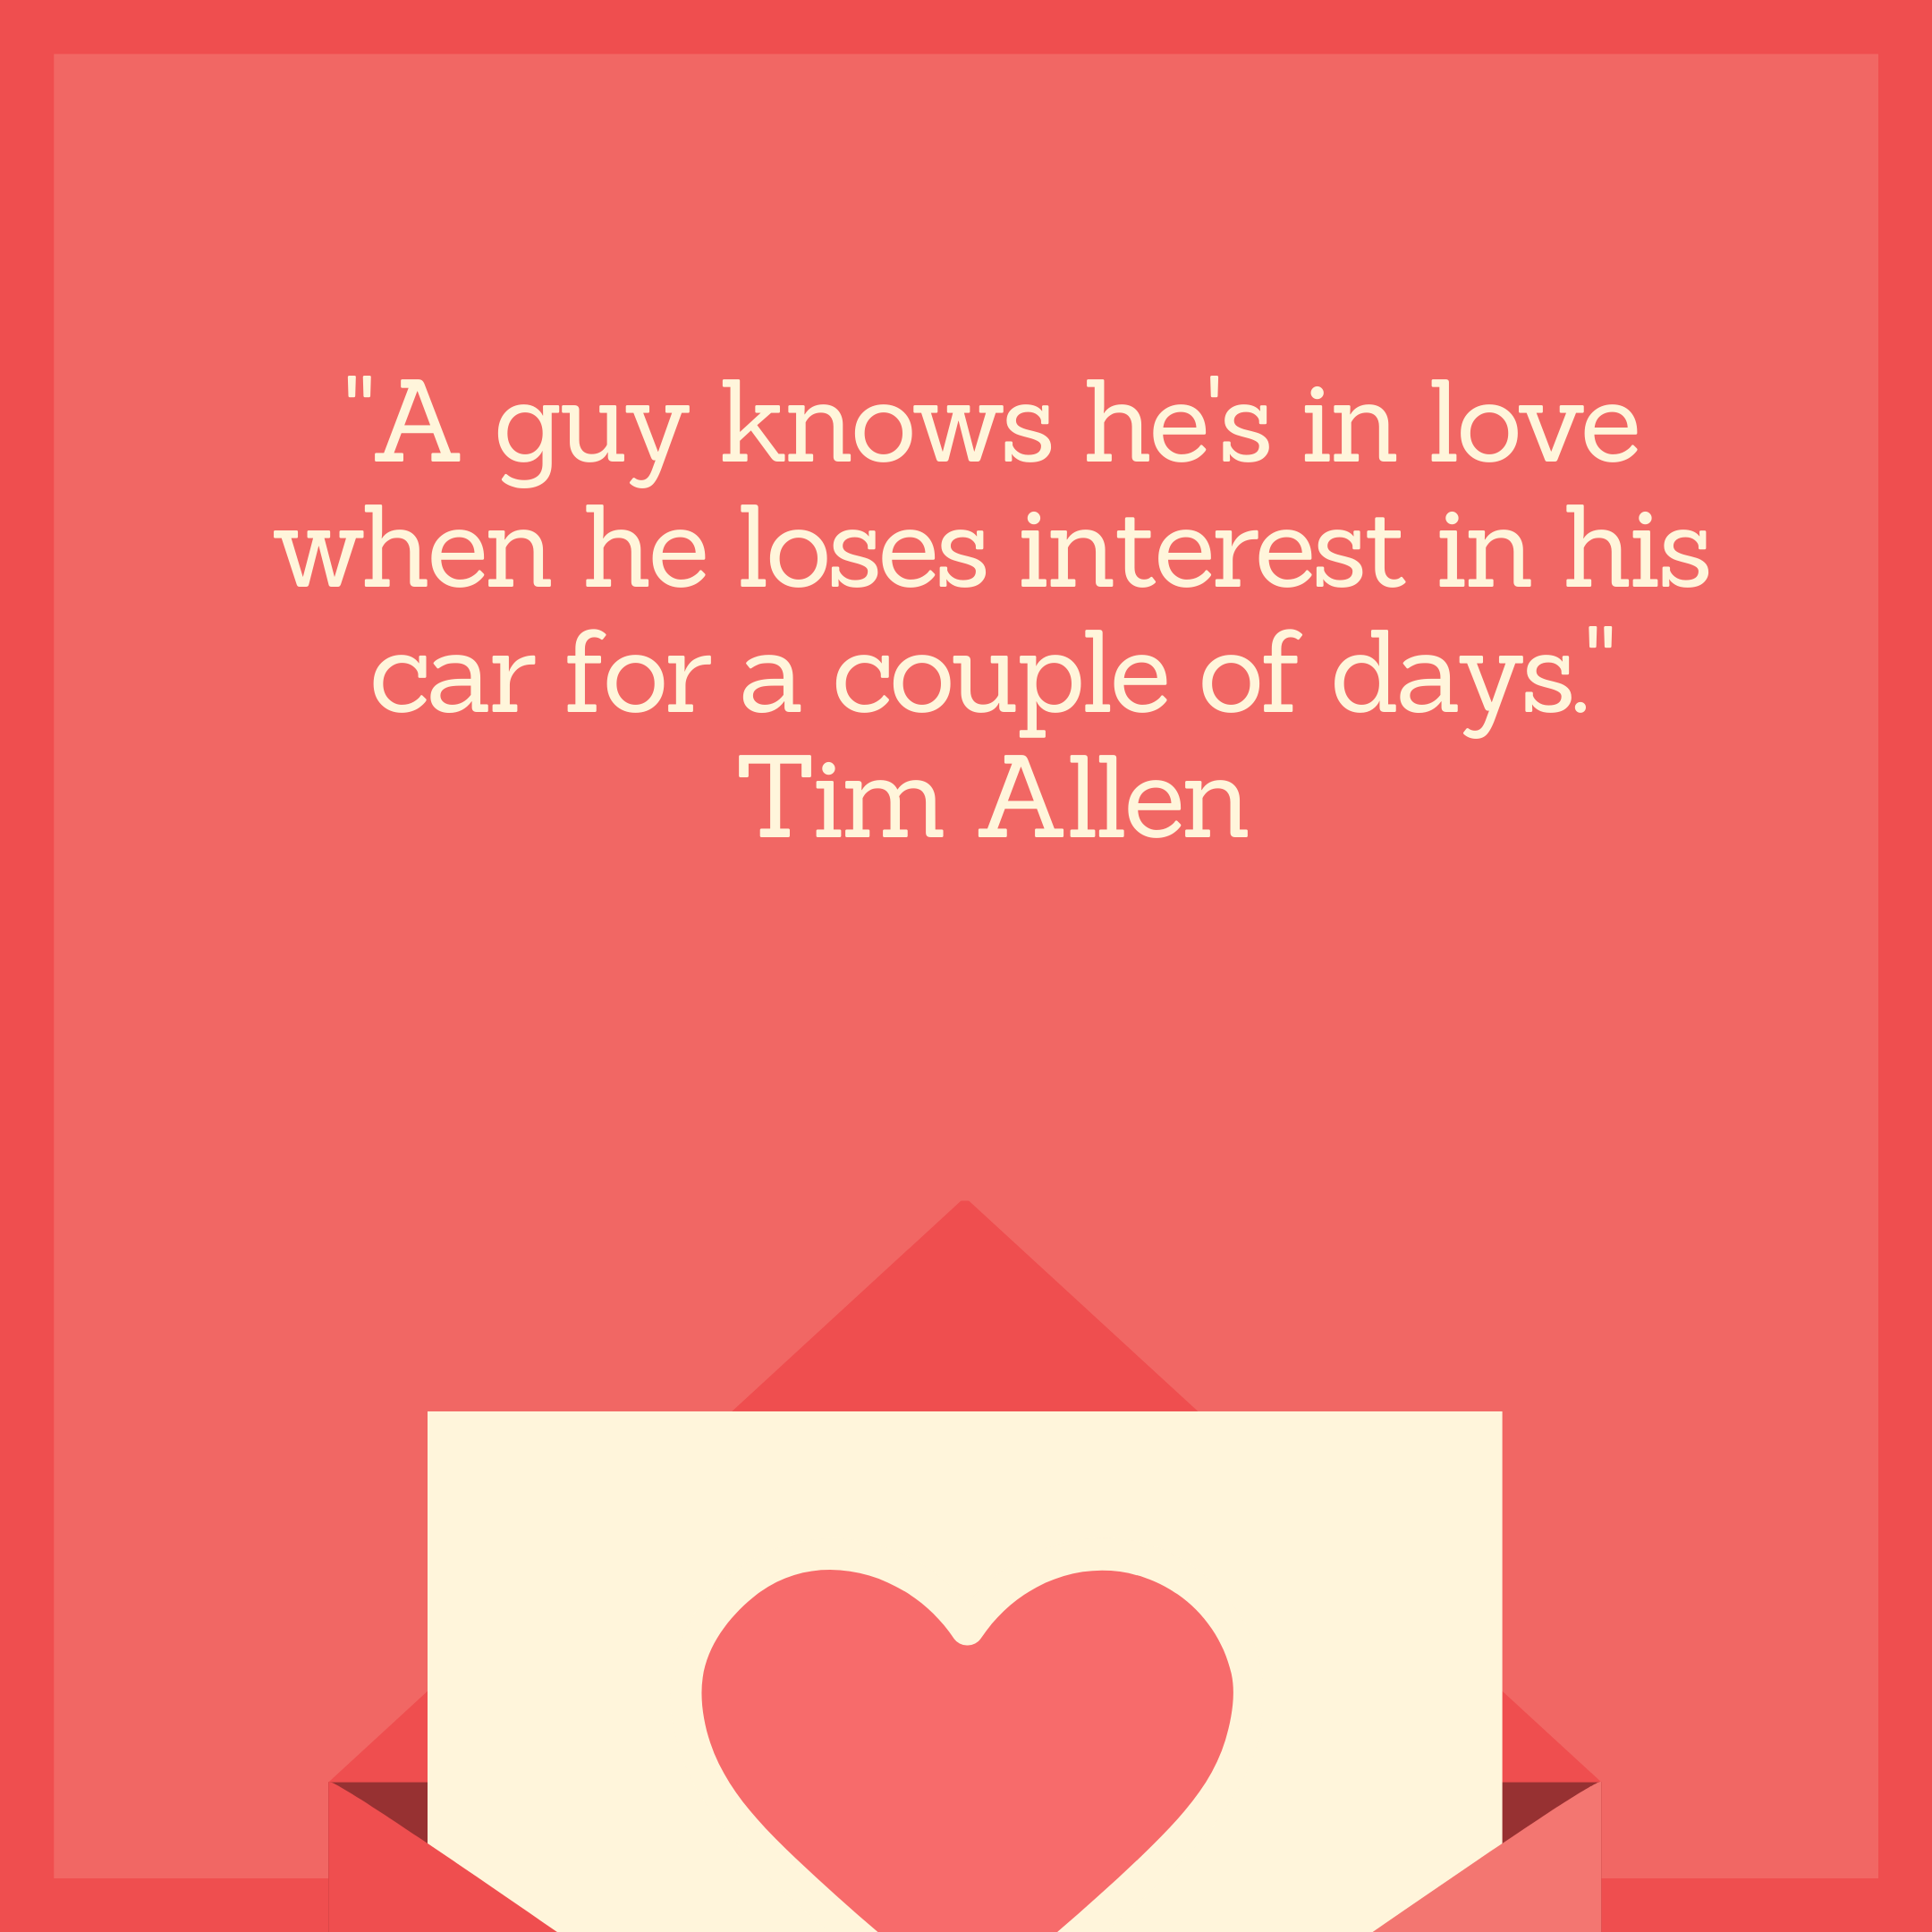 """A guy knows he's in love when he loses interest in his car for a couple of days."" Tim Allen"